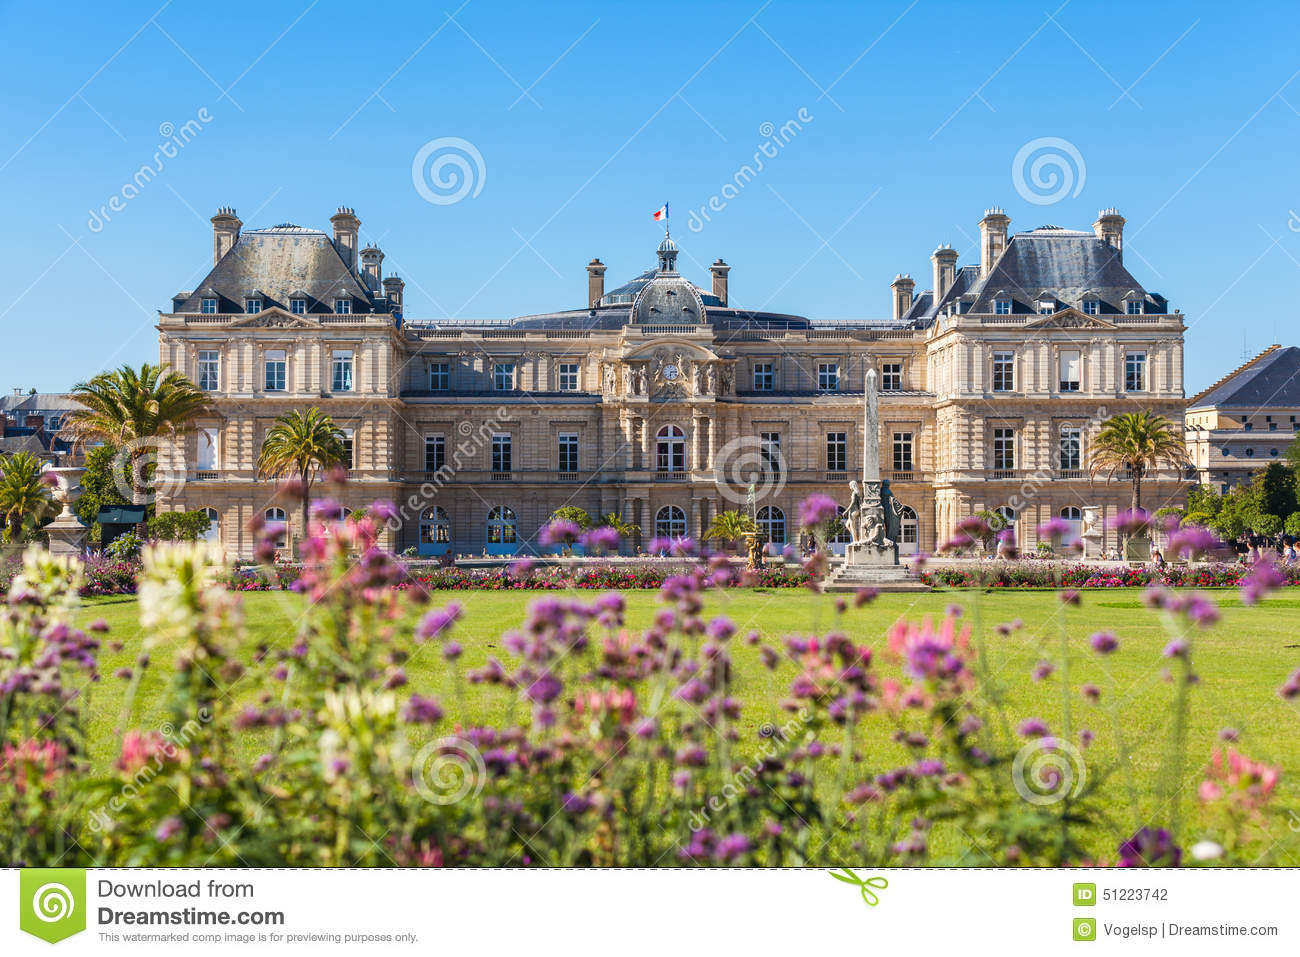 Luxembourg palace in jardin du luxembourg stock photo for Jardin du luxembourg